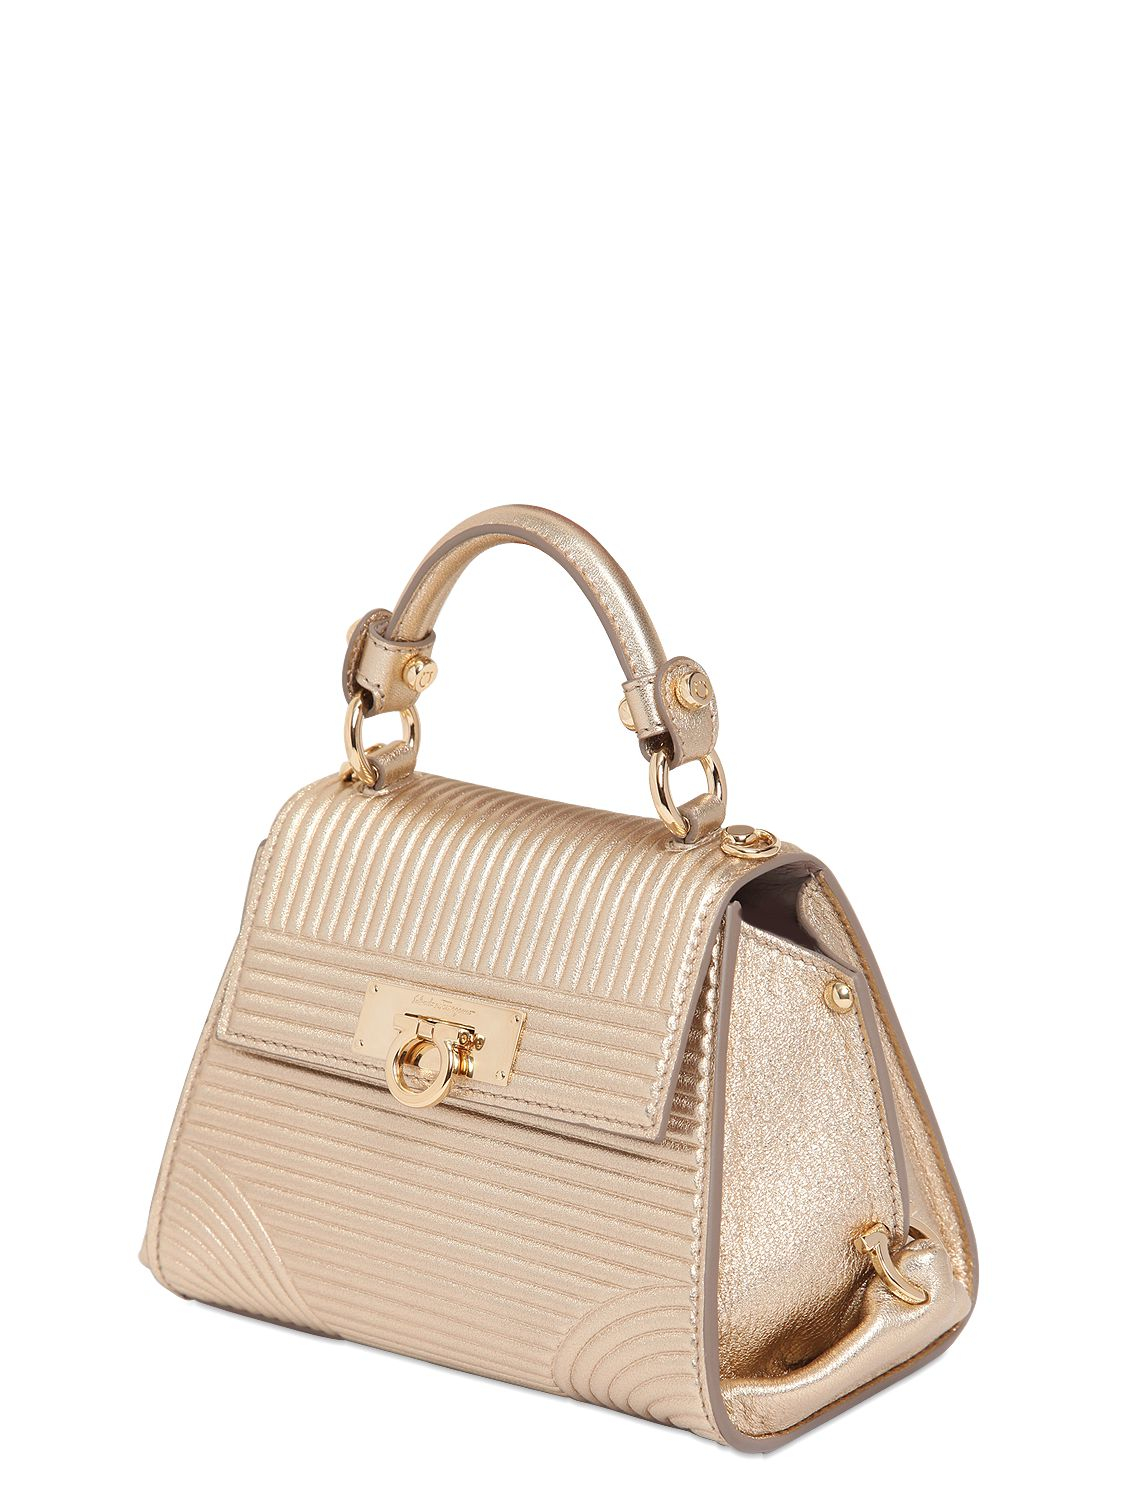 0ee600fc2b7 Lyst - Ferragamo Mini Sofia Metallic Leather Bag in Metallic